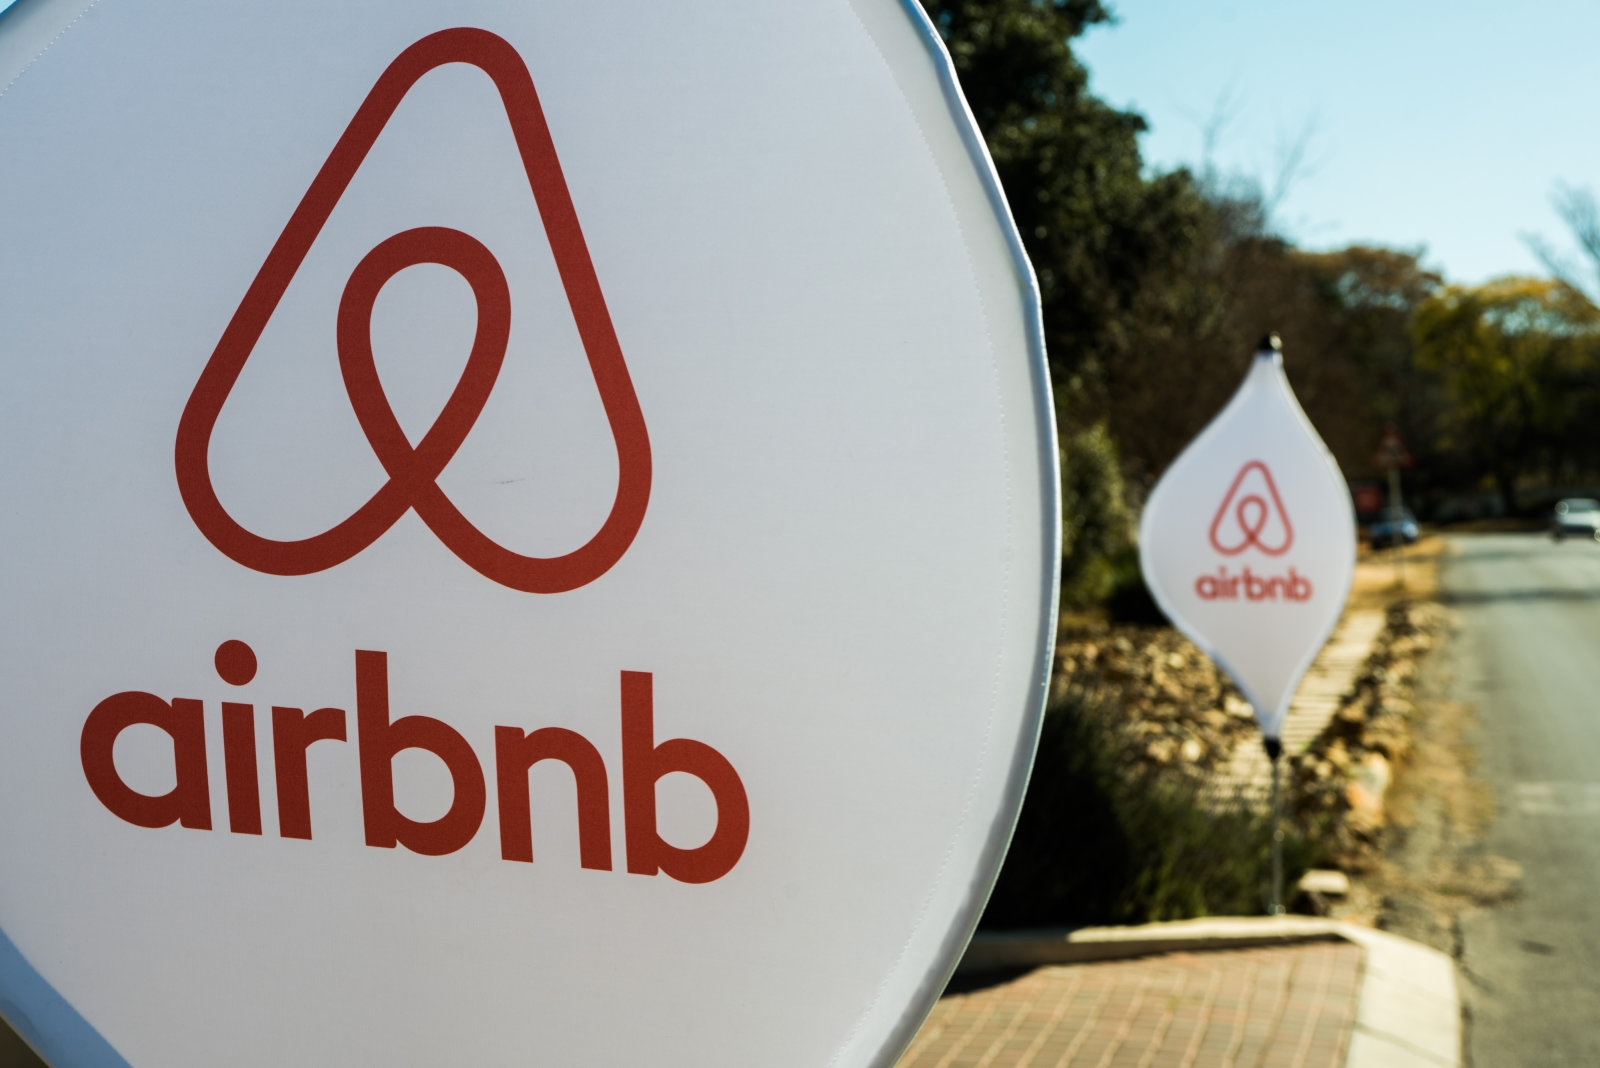 Airbnb introduces Donations to help with temporary housing | DeviceDaily.com